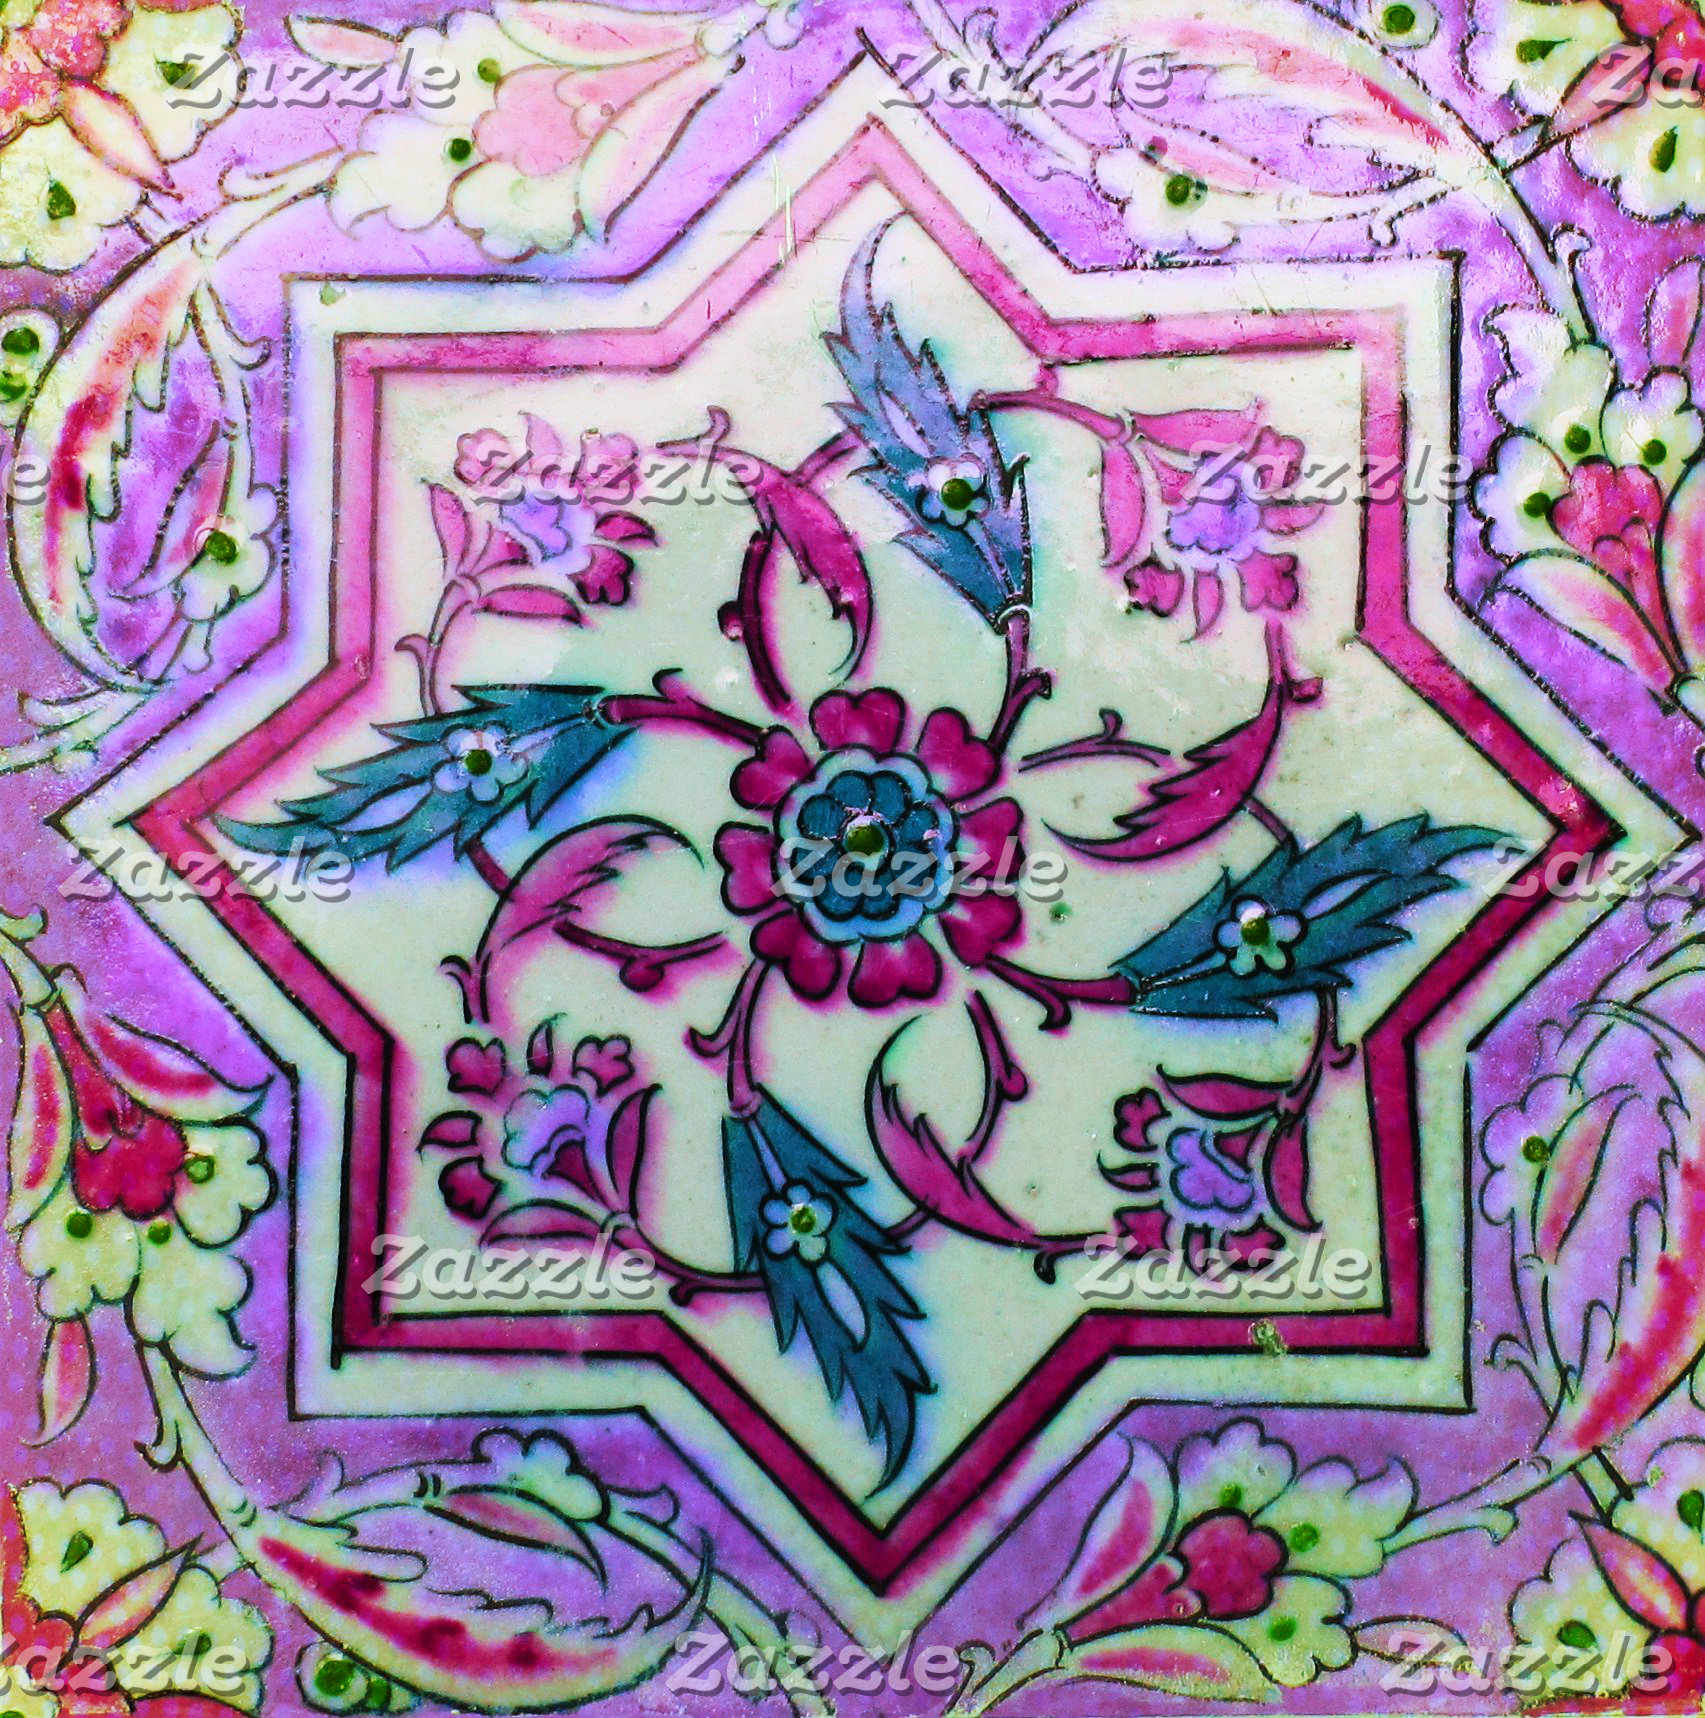 Pink and White Tile wit hints of Green